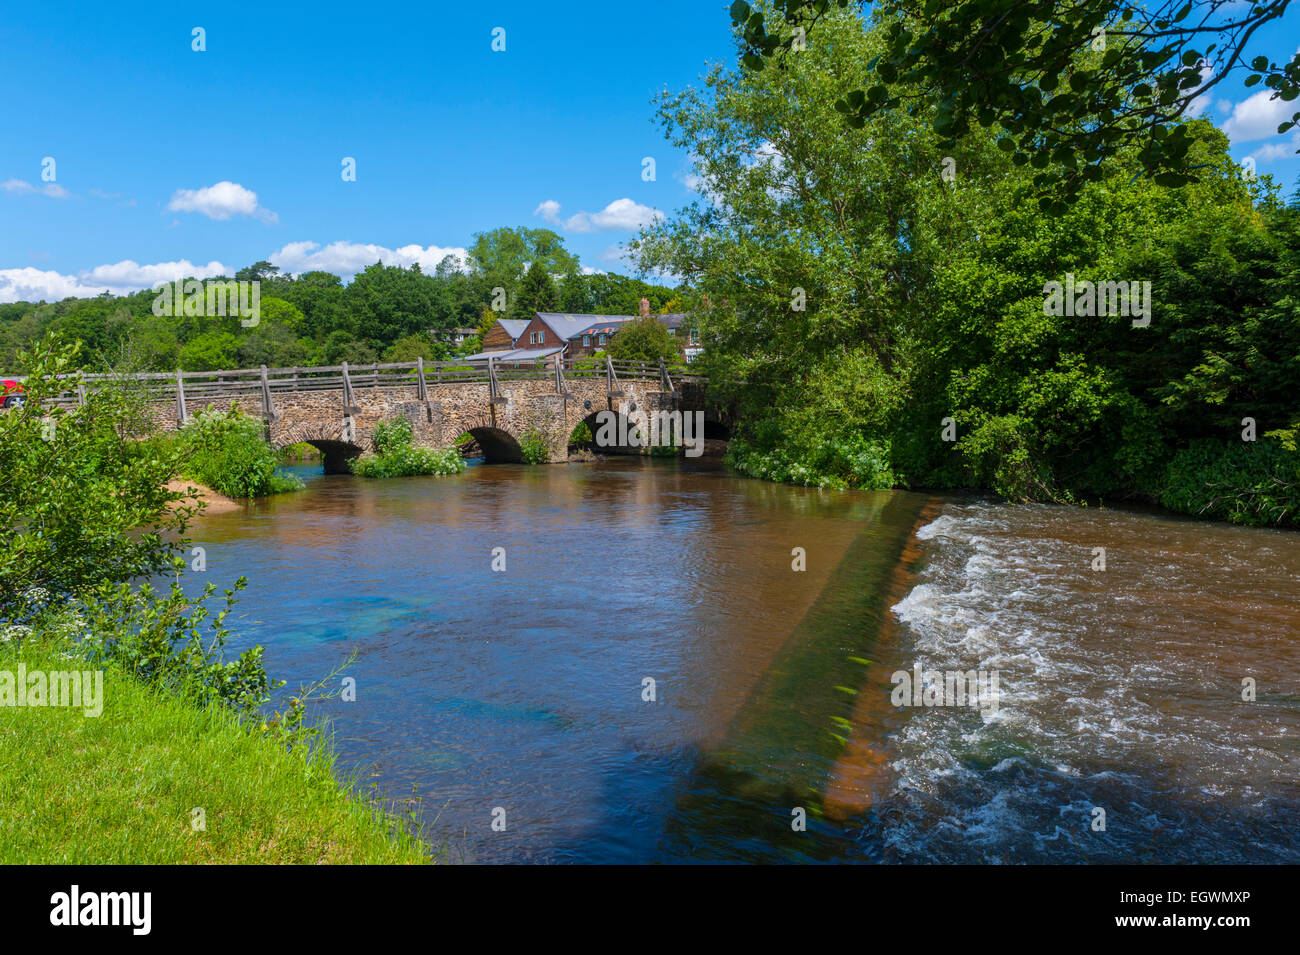 Bridge on the river Wey at Tilford Surrey. - Stock Image